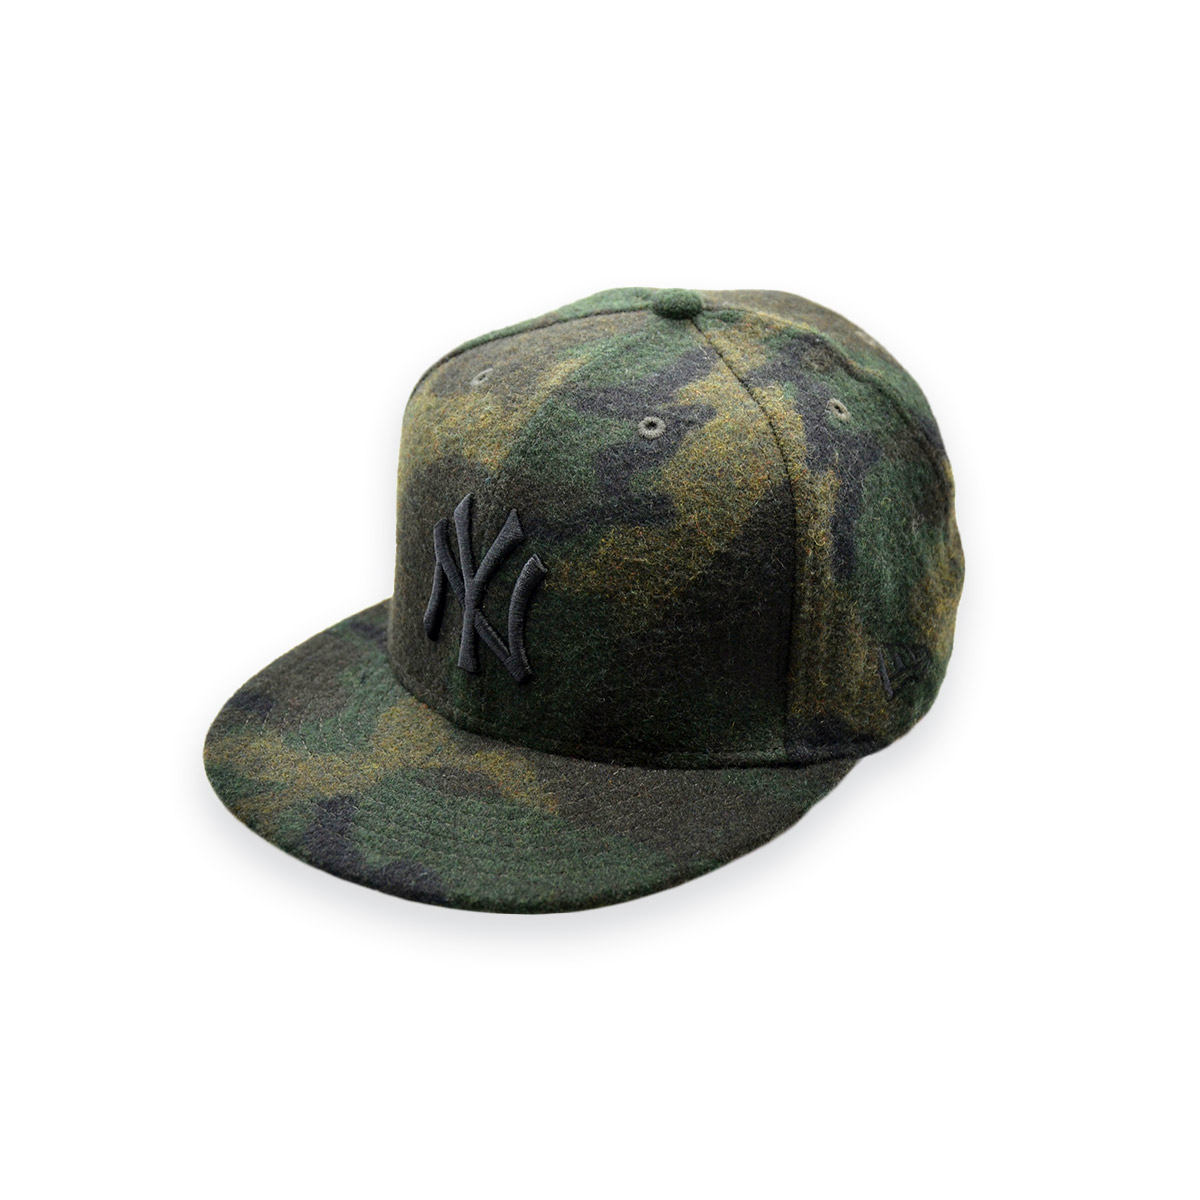 c229cd78bd7 NEW ERA JAPAN NEW YORK YANKEES CAMO FITTED 59FIFTY CAP 7-1 2 59.6cm ...